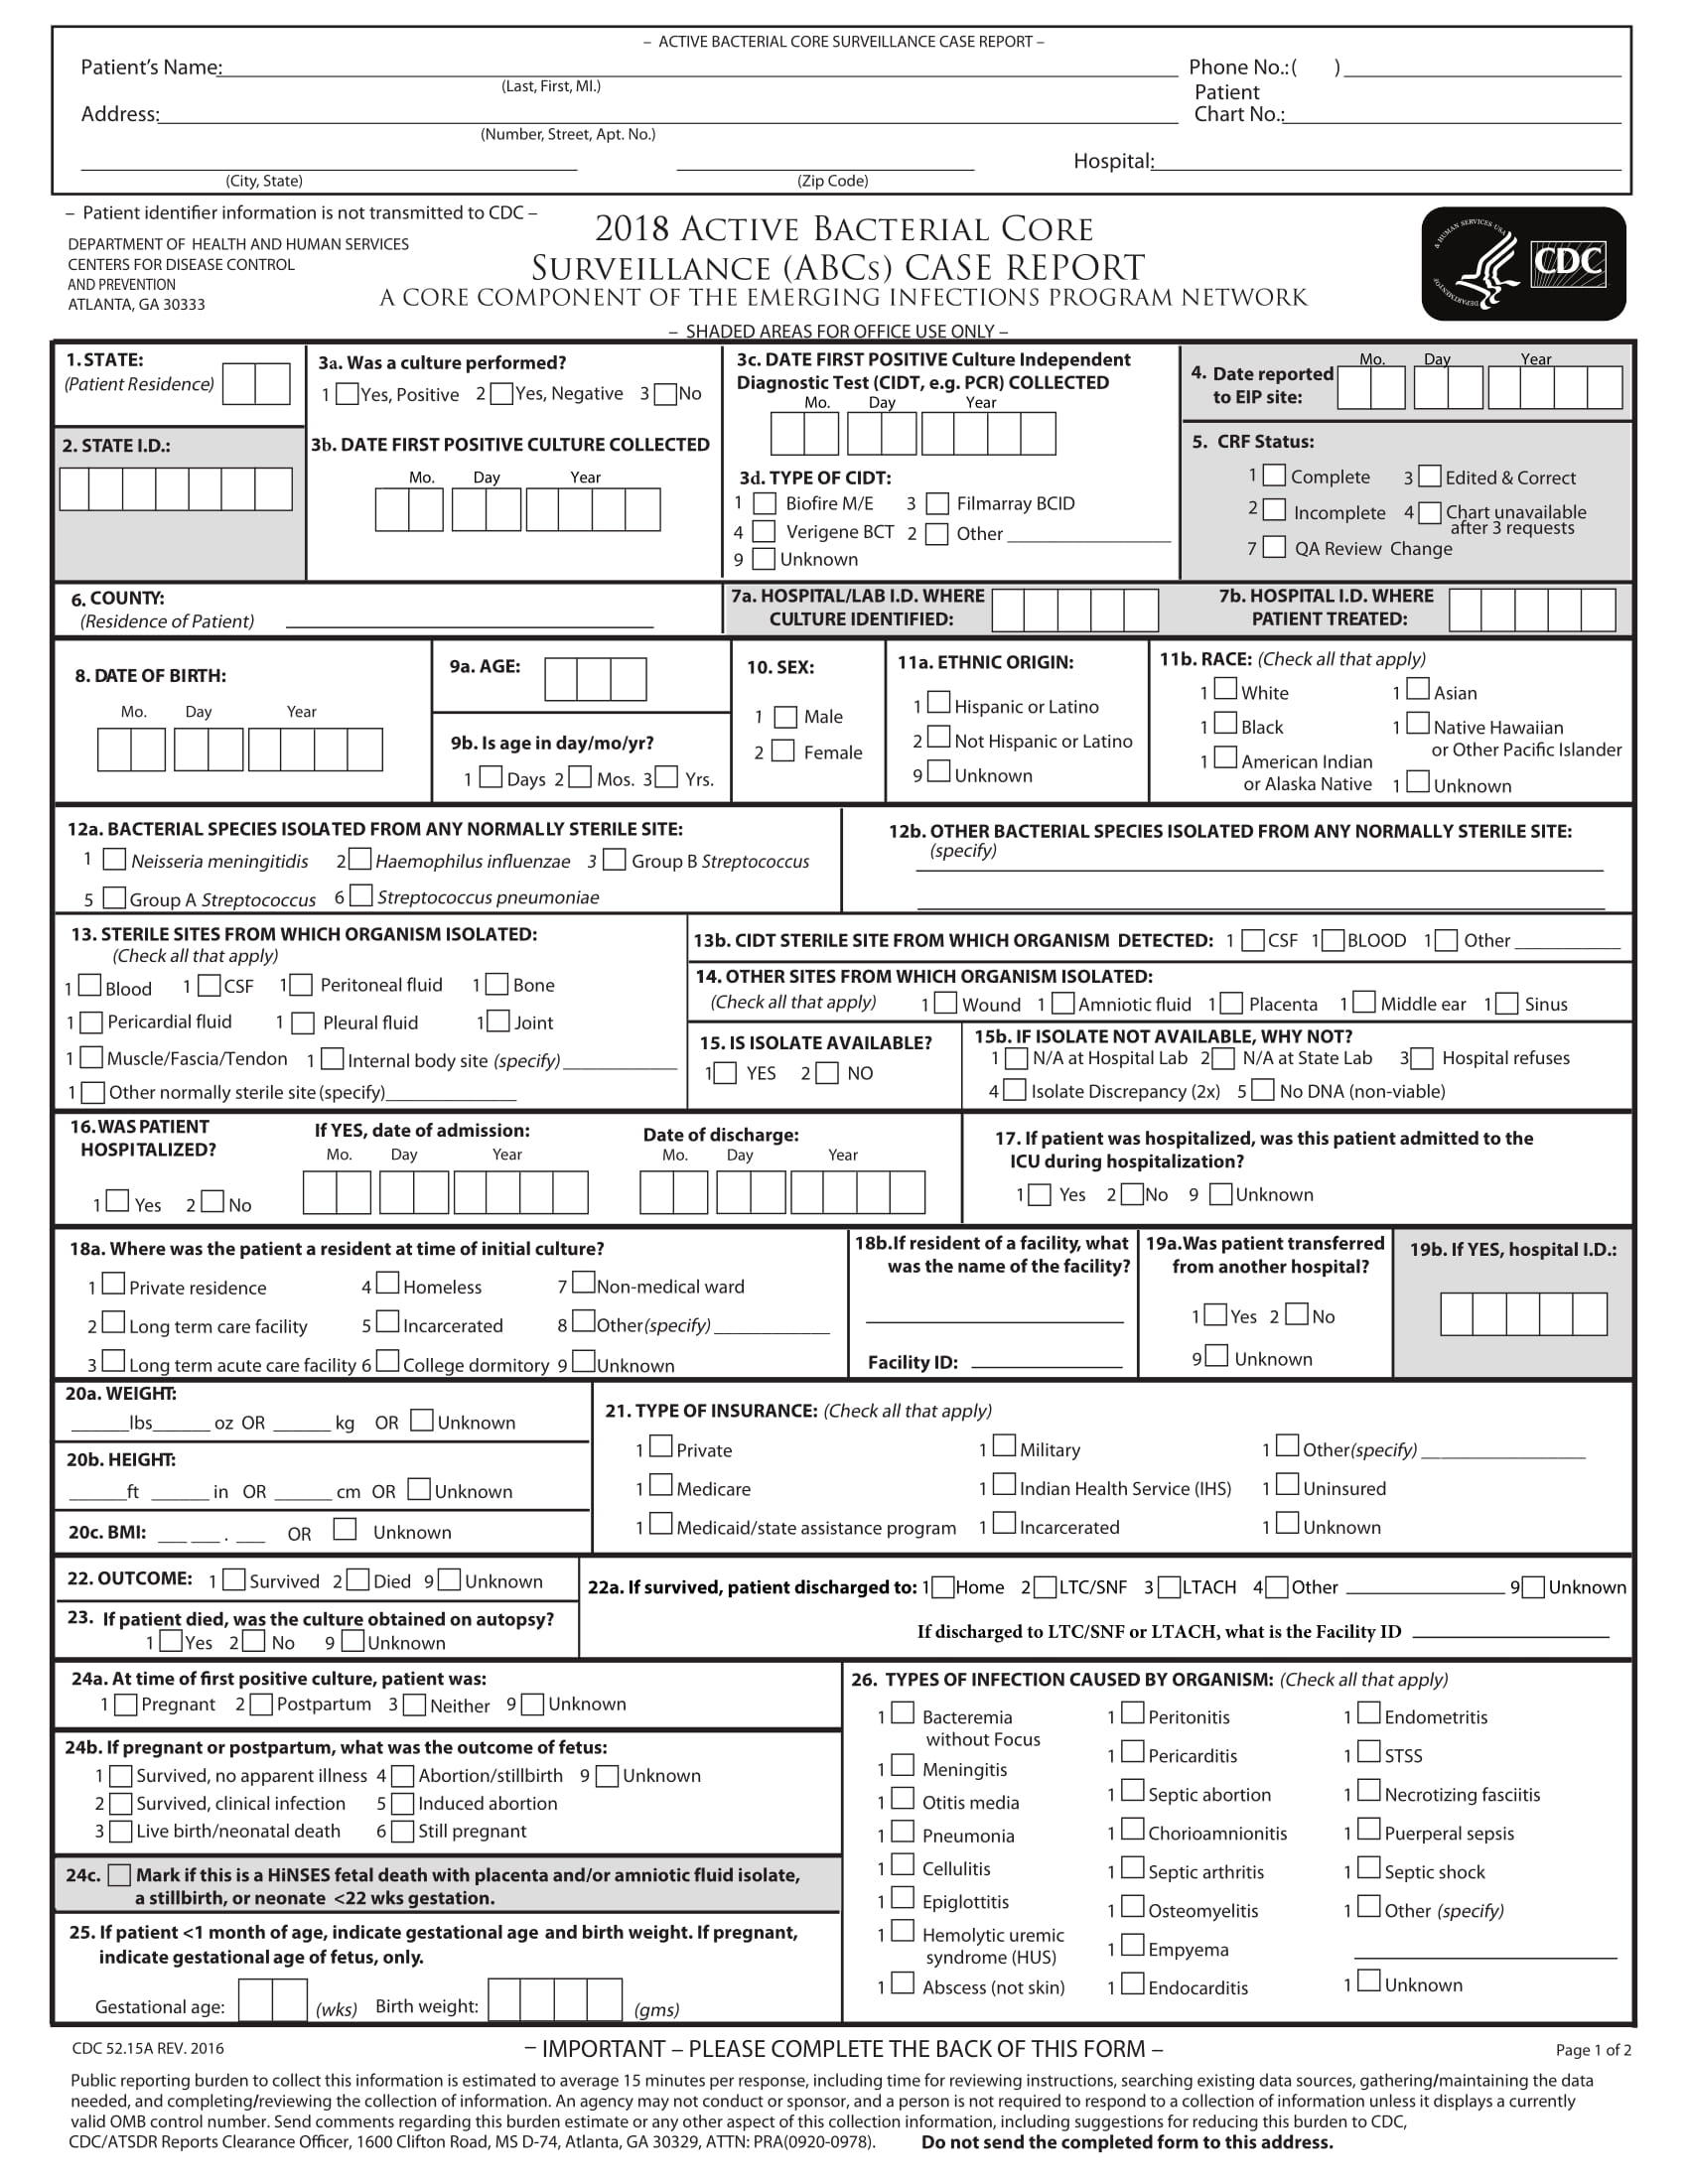 infection case report form template 1